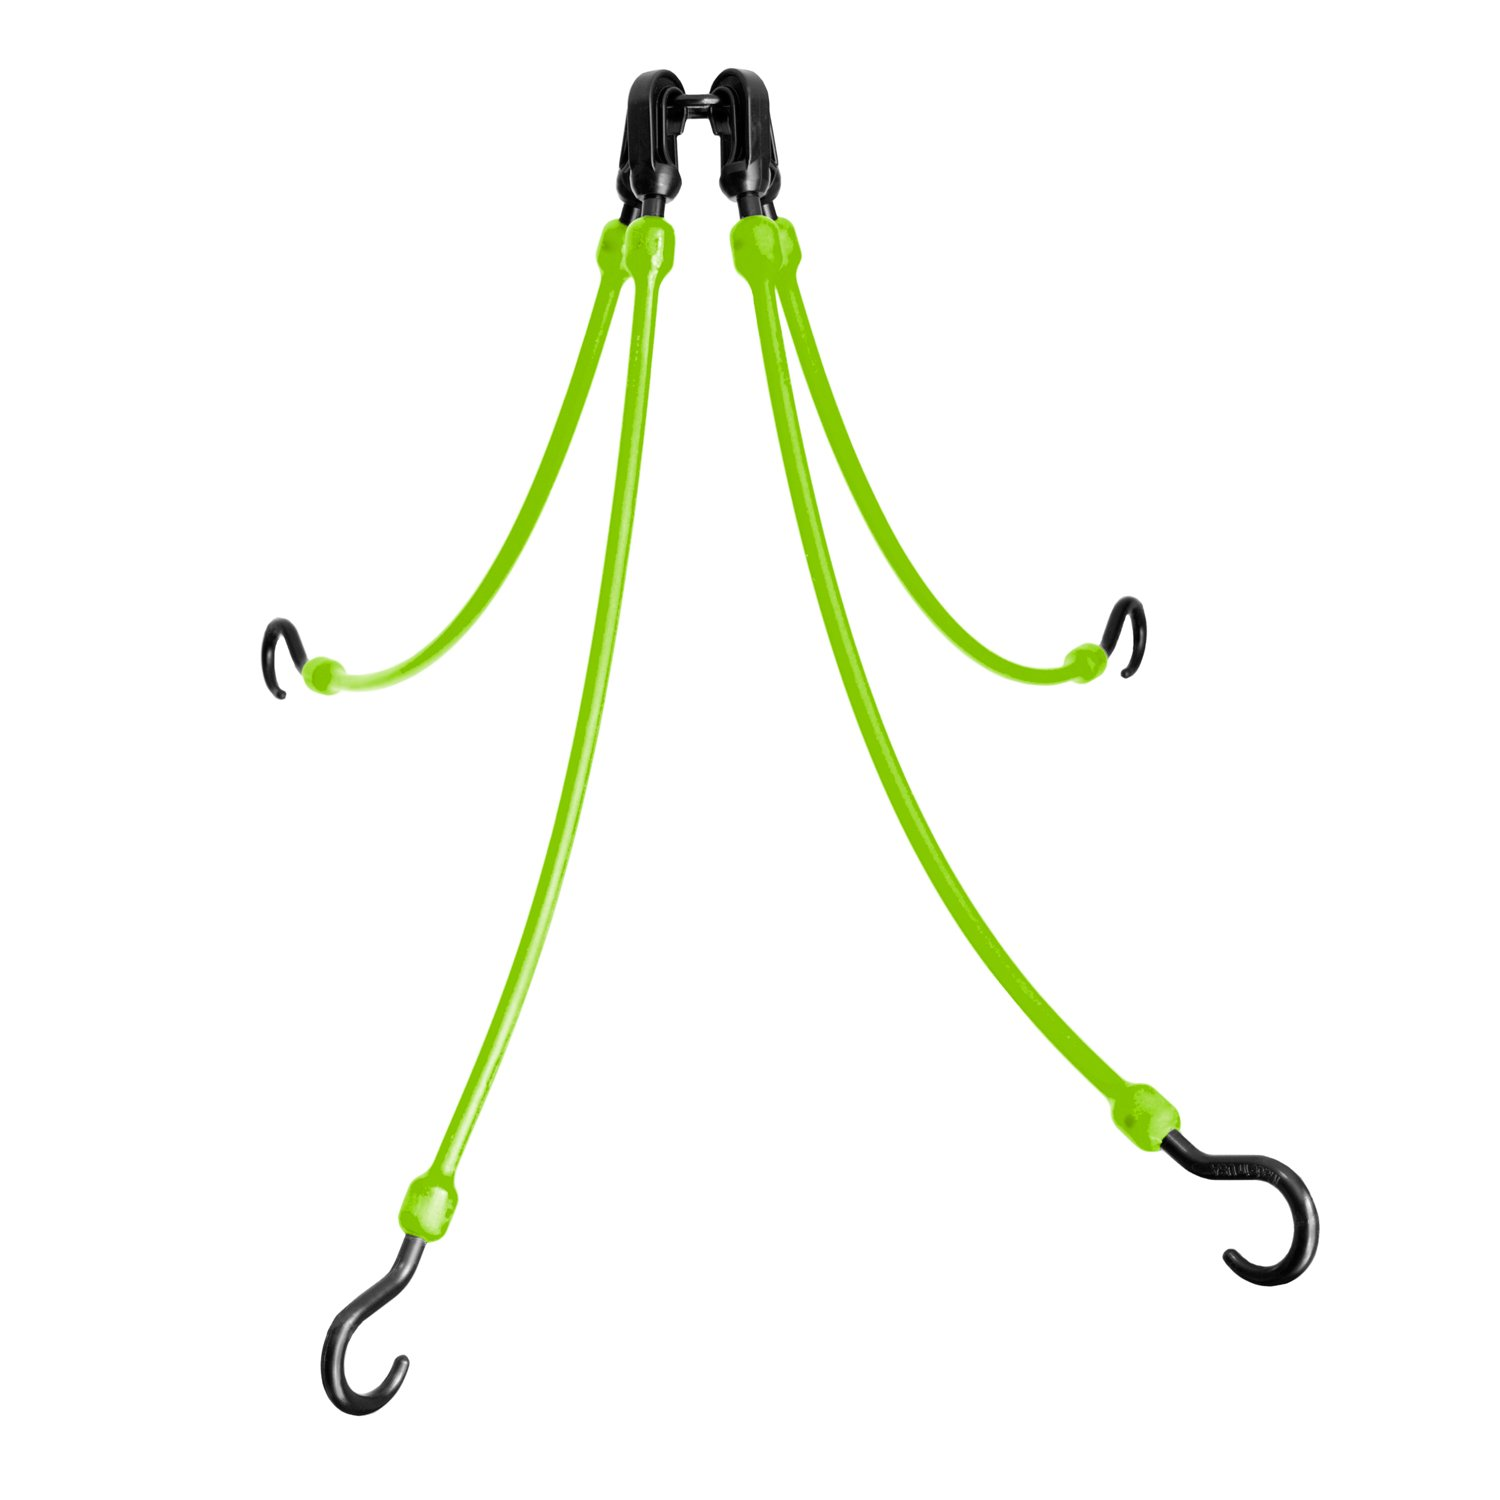 The Perfect Bungee by BihlerFlex FW18-4G 4-Arm Flex-Web Bungee Cords 4, 18''-36'', Safety Green